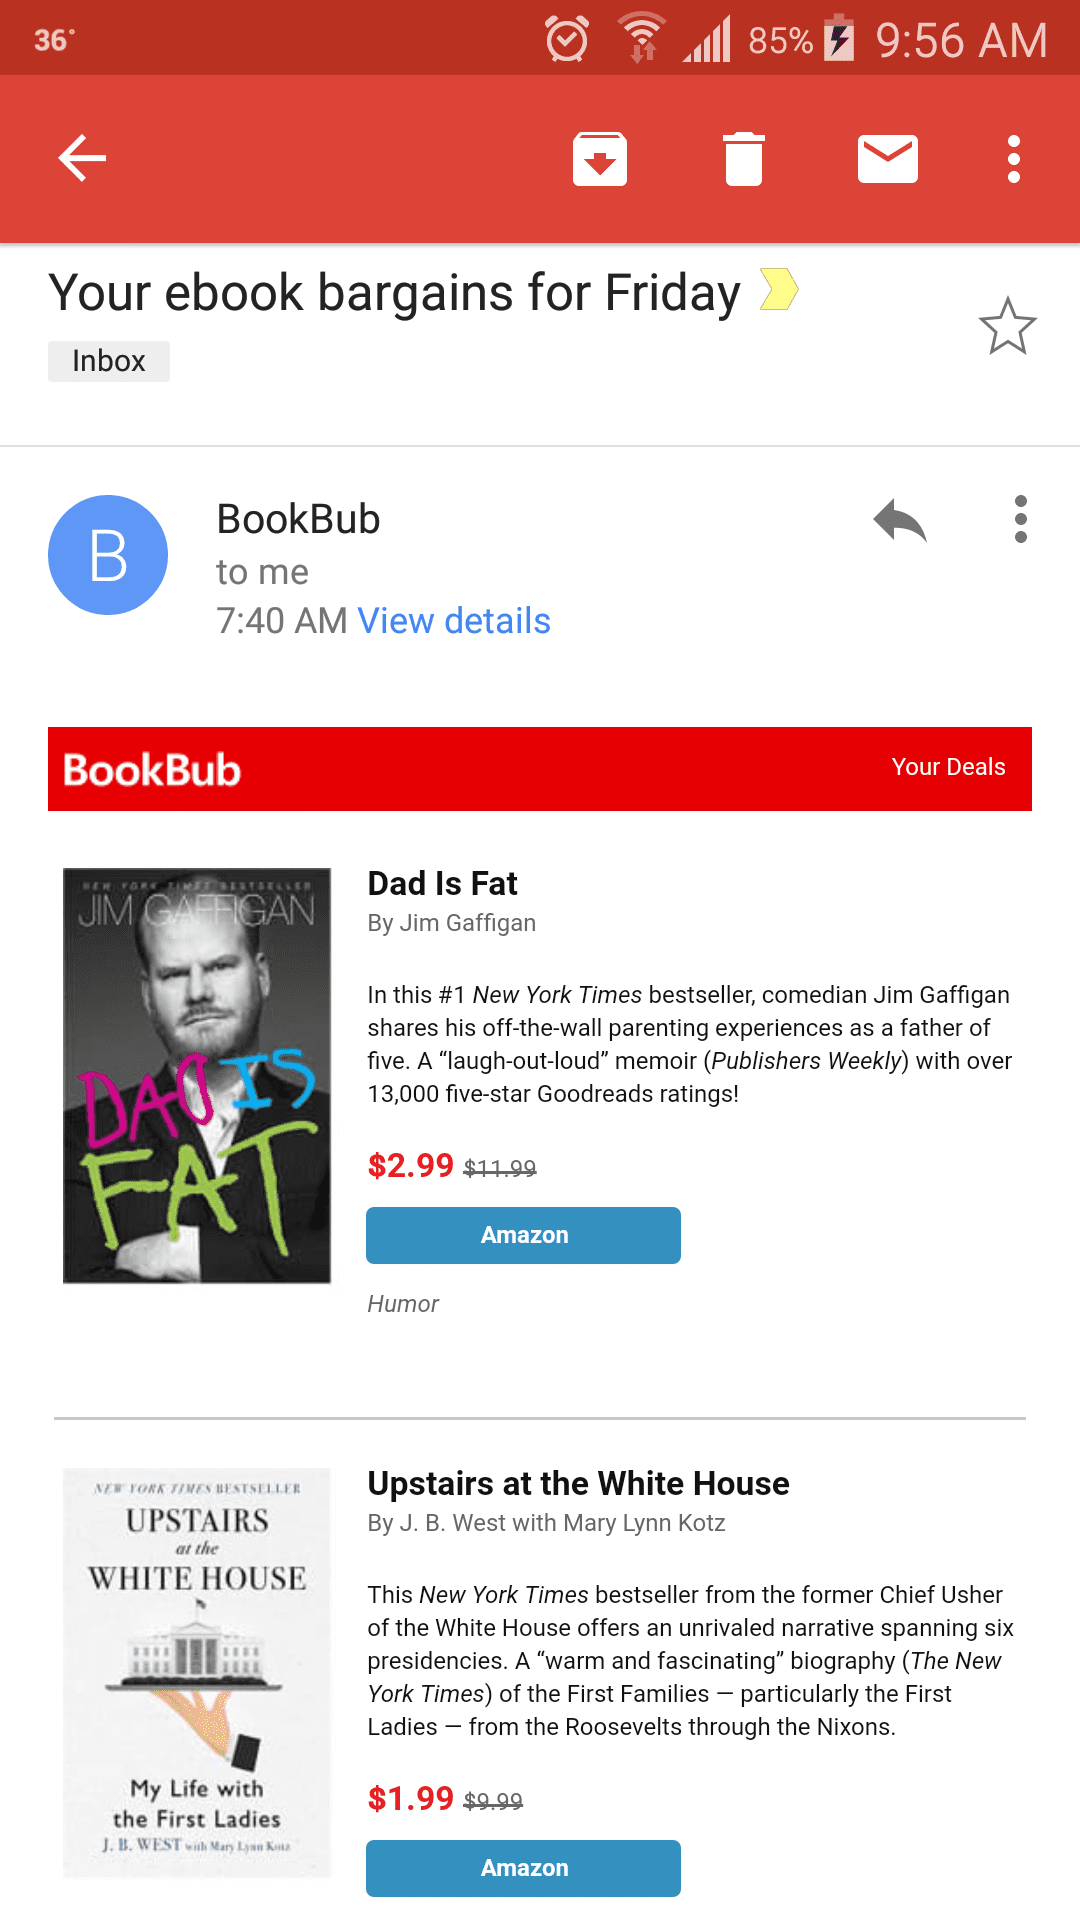 Bookbub personalized email